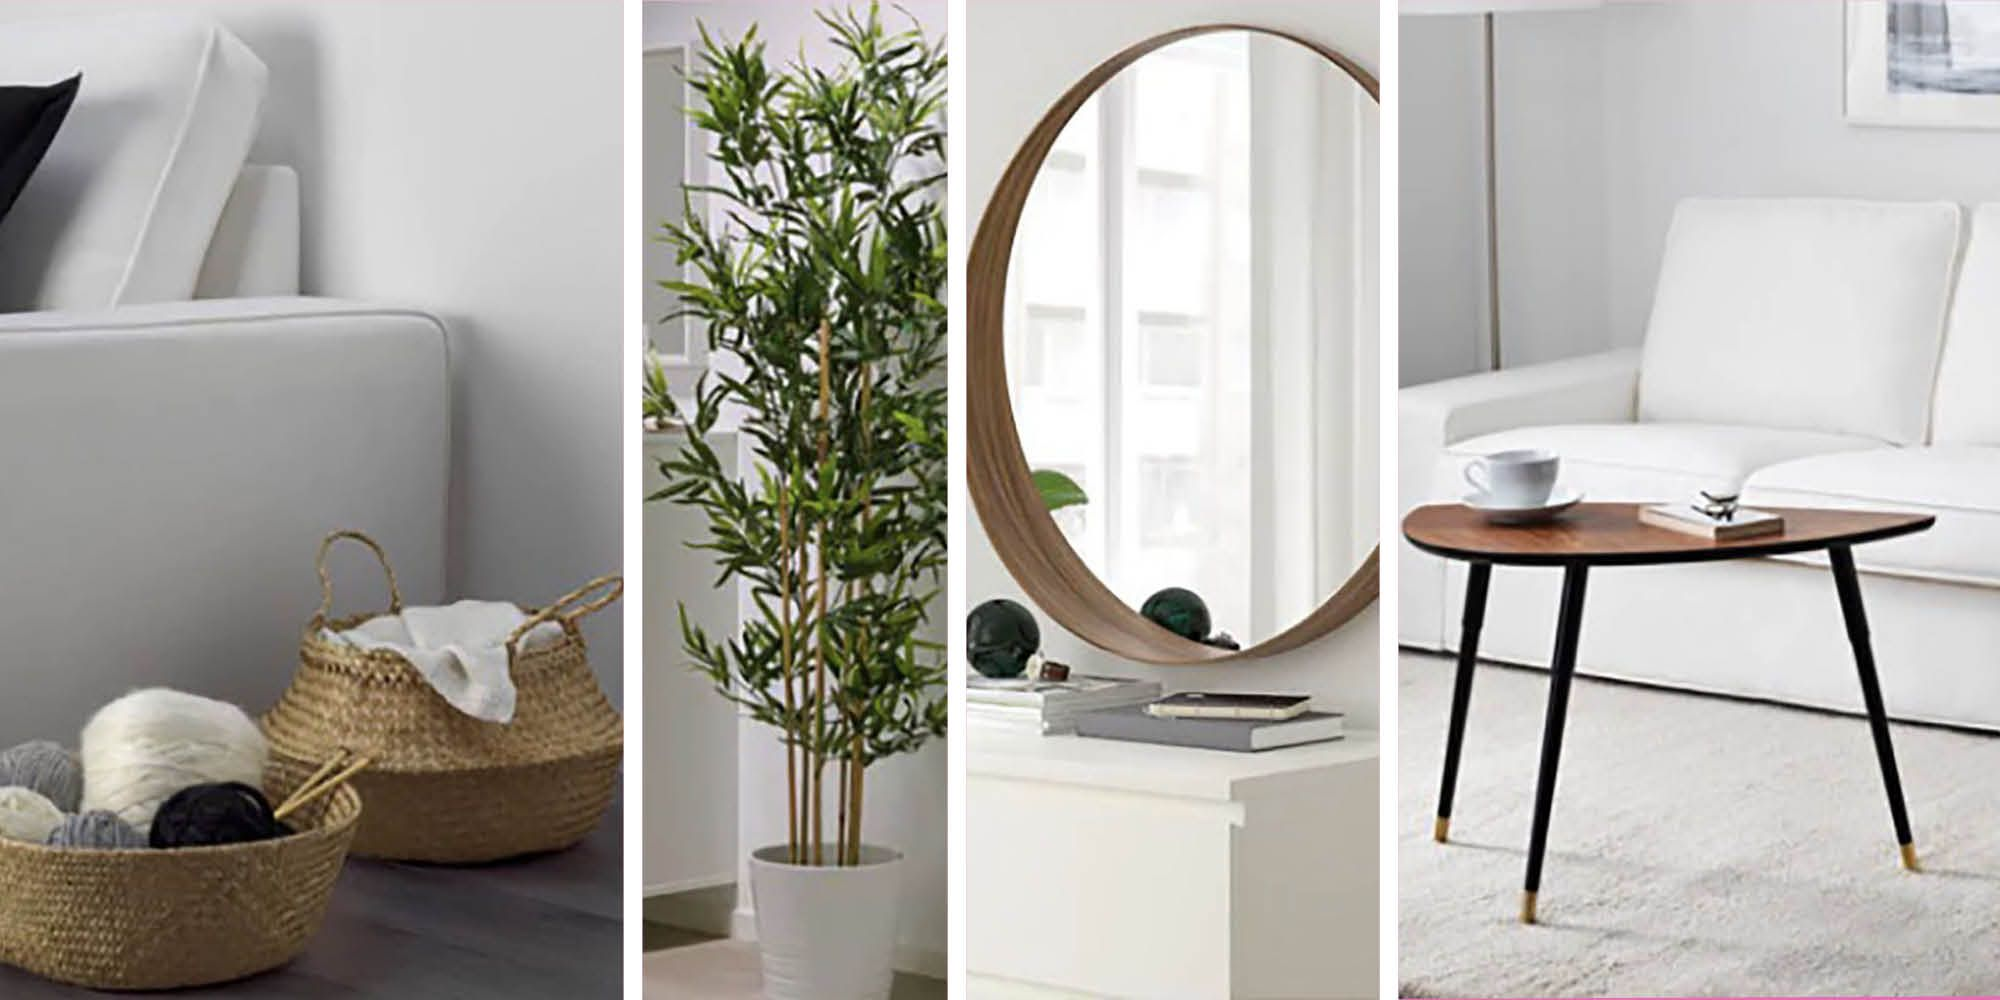 22 Ikea buys you'll want in your home immediately